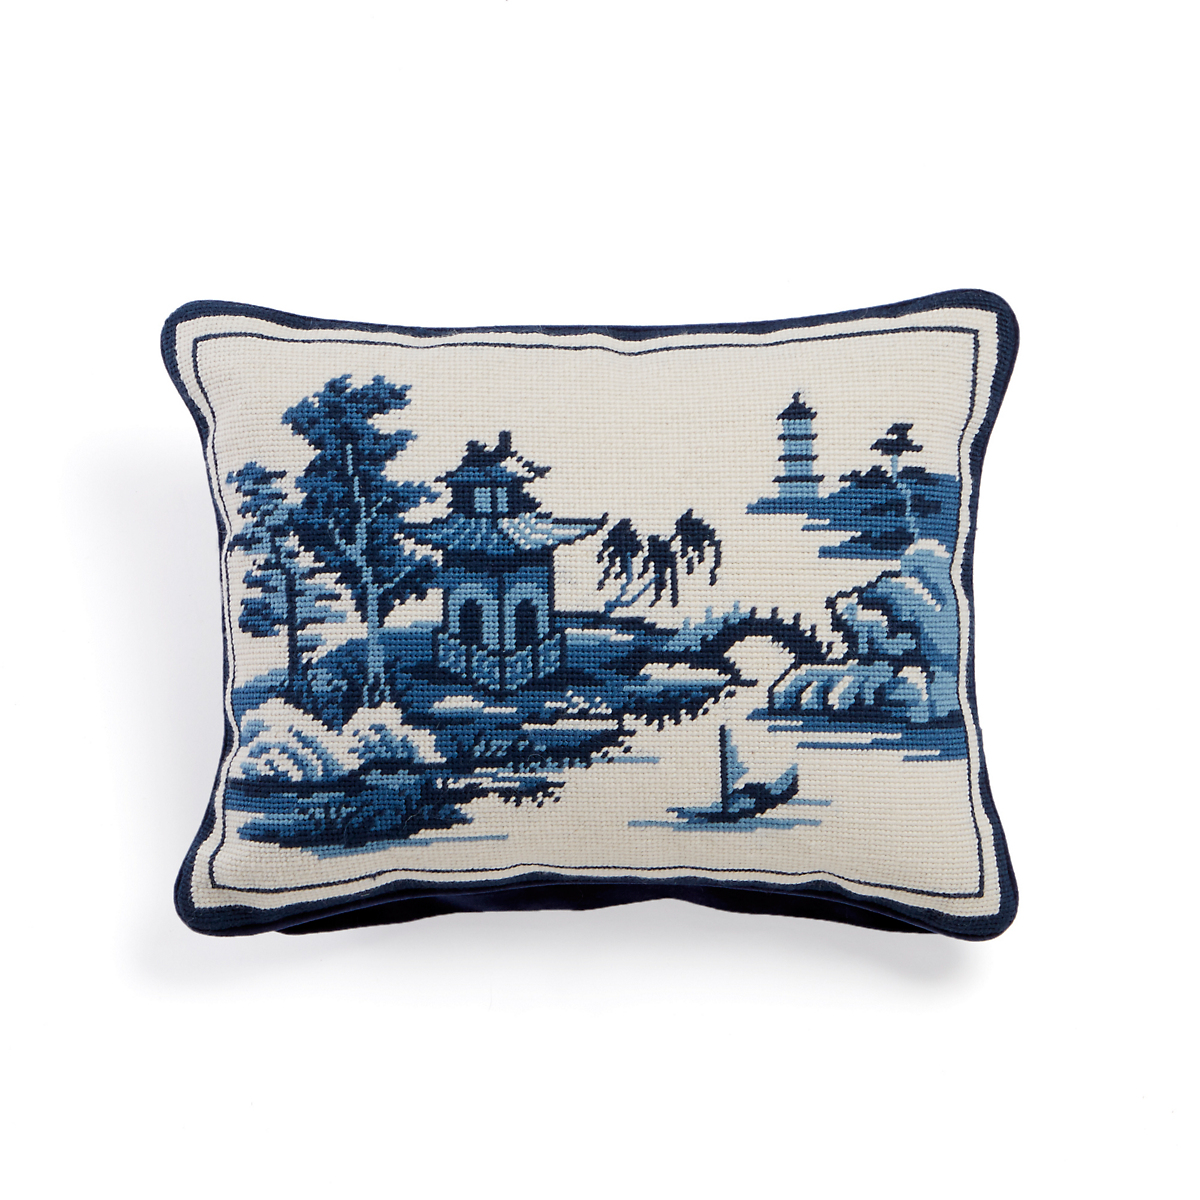 Canton Blue Pagoda Needlepoint Pillow